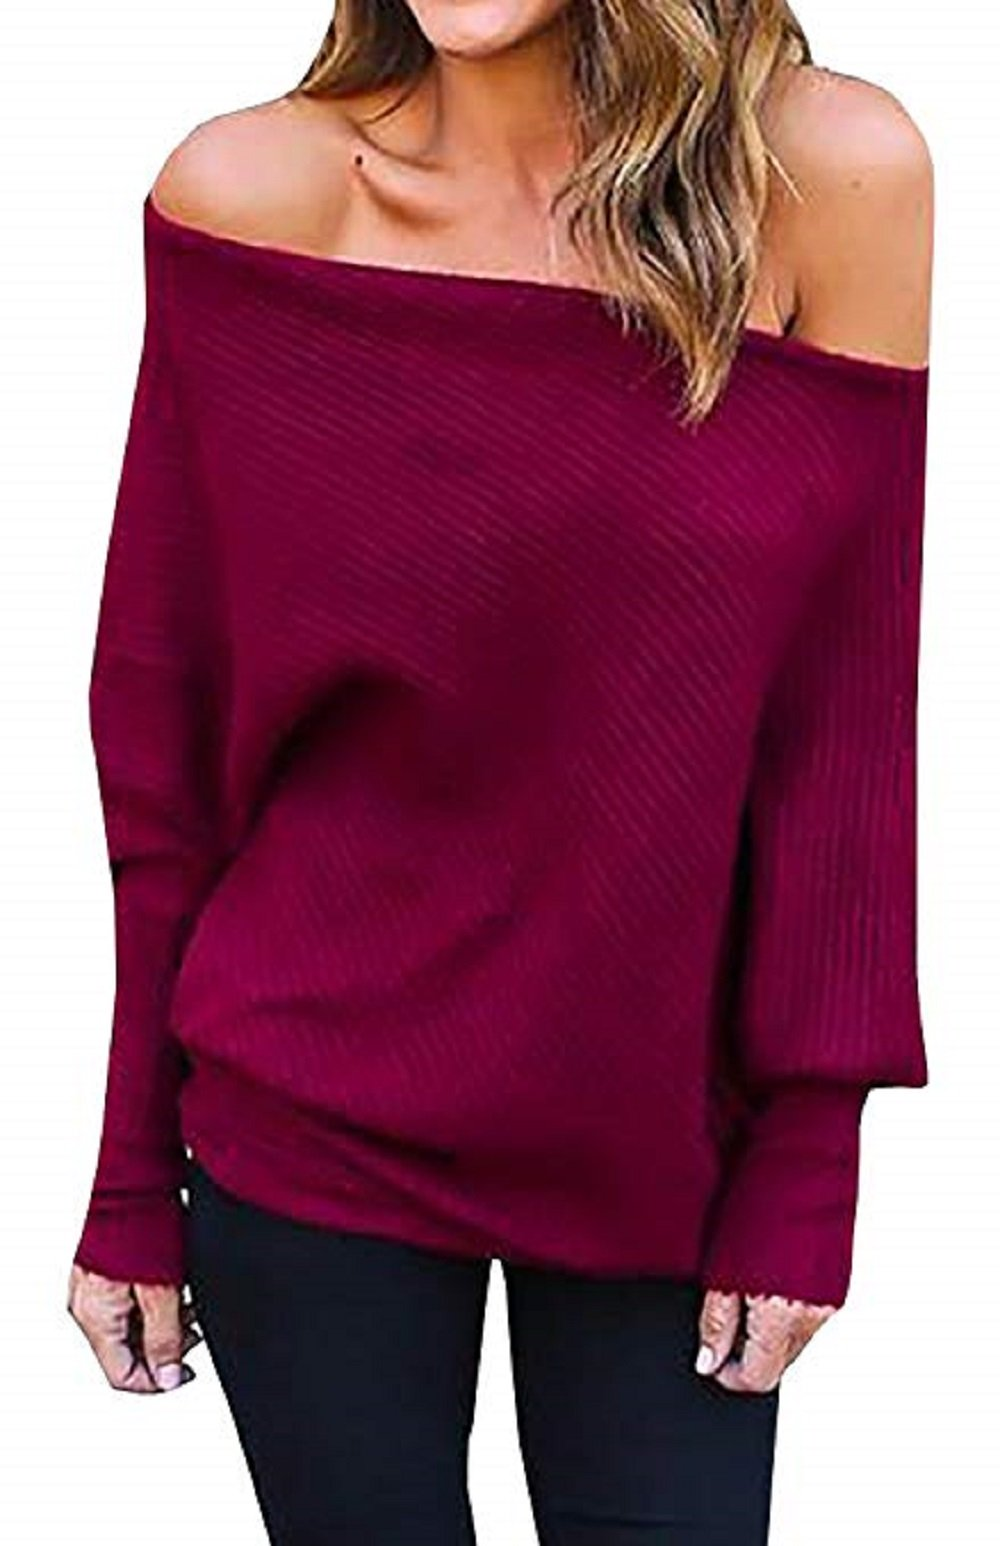 FISACE Womens Knitted One Shoulder Batwing Sleeve Loose Pullover Sweater Jumper